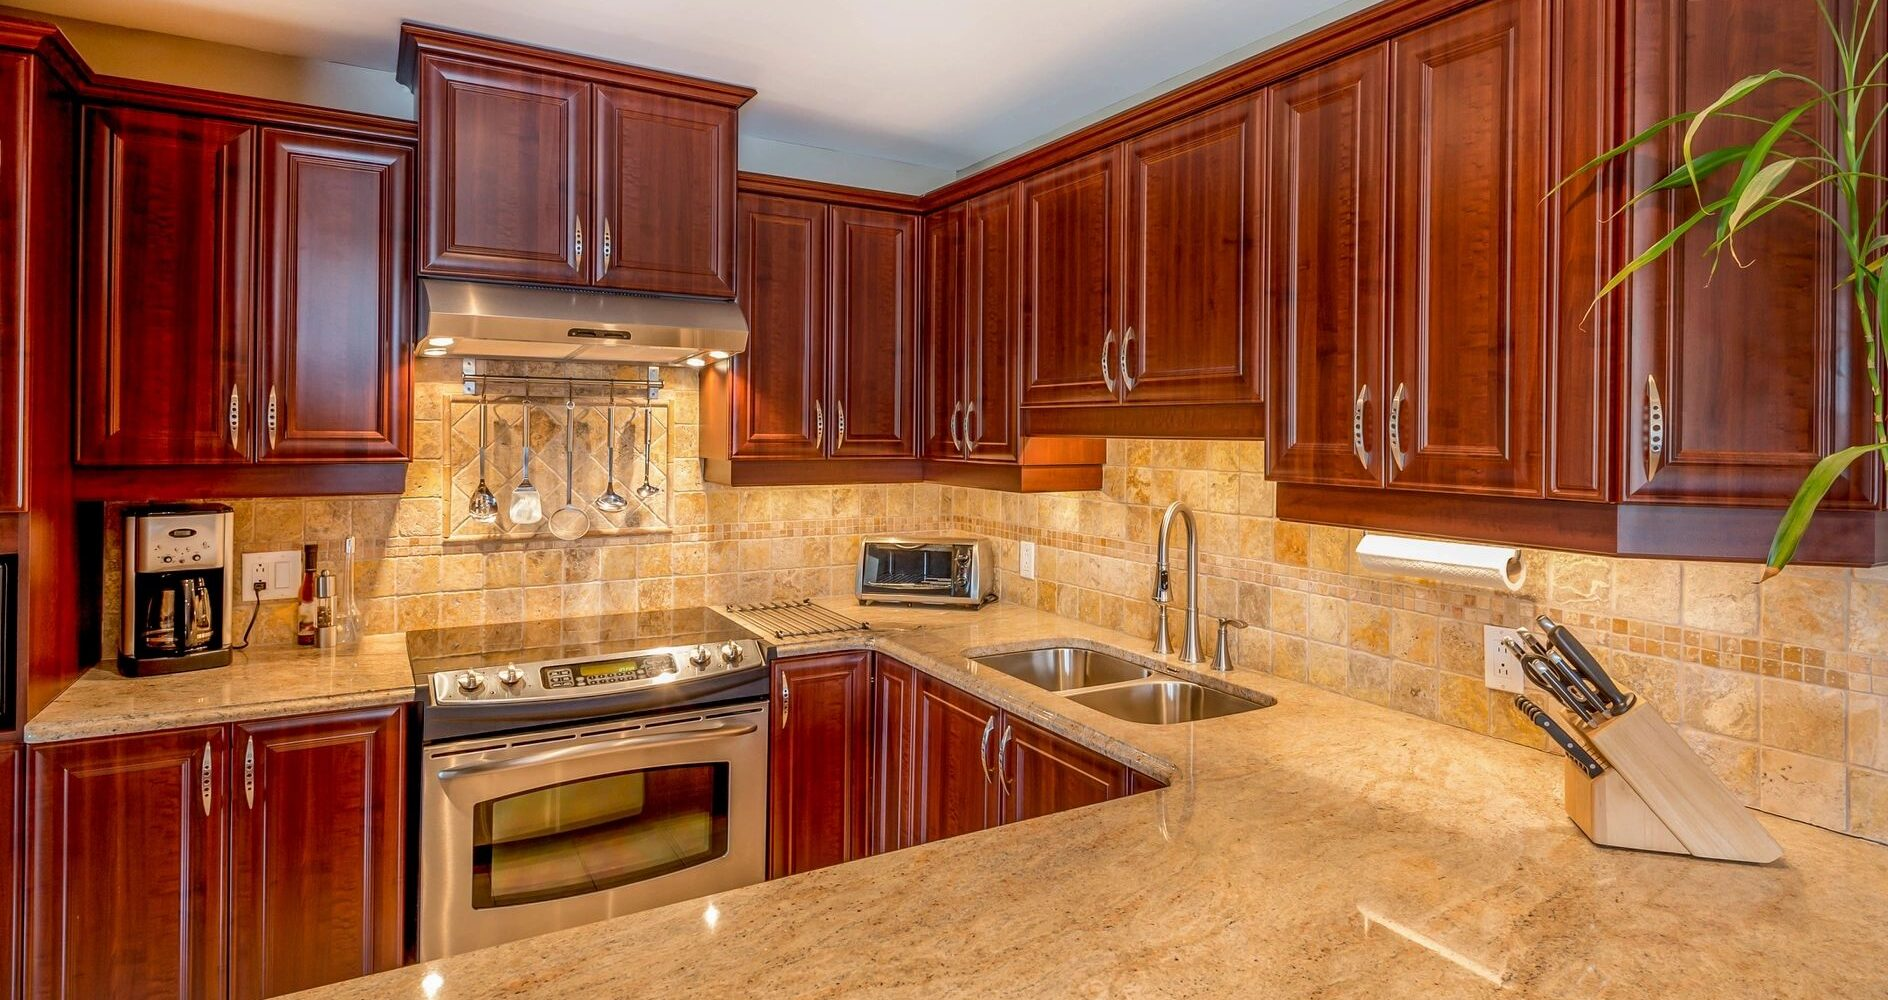 OUR WIDE SELECTION INCLUDES GRANITE, MARBLE, QUARTZ AND QUARTZITE